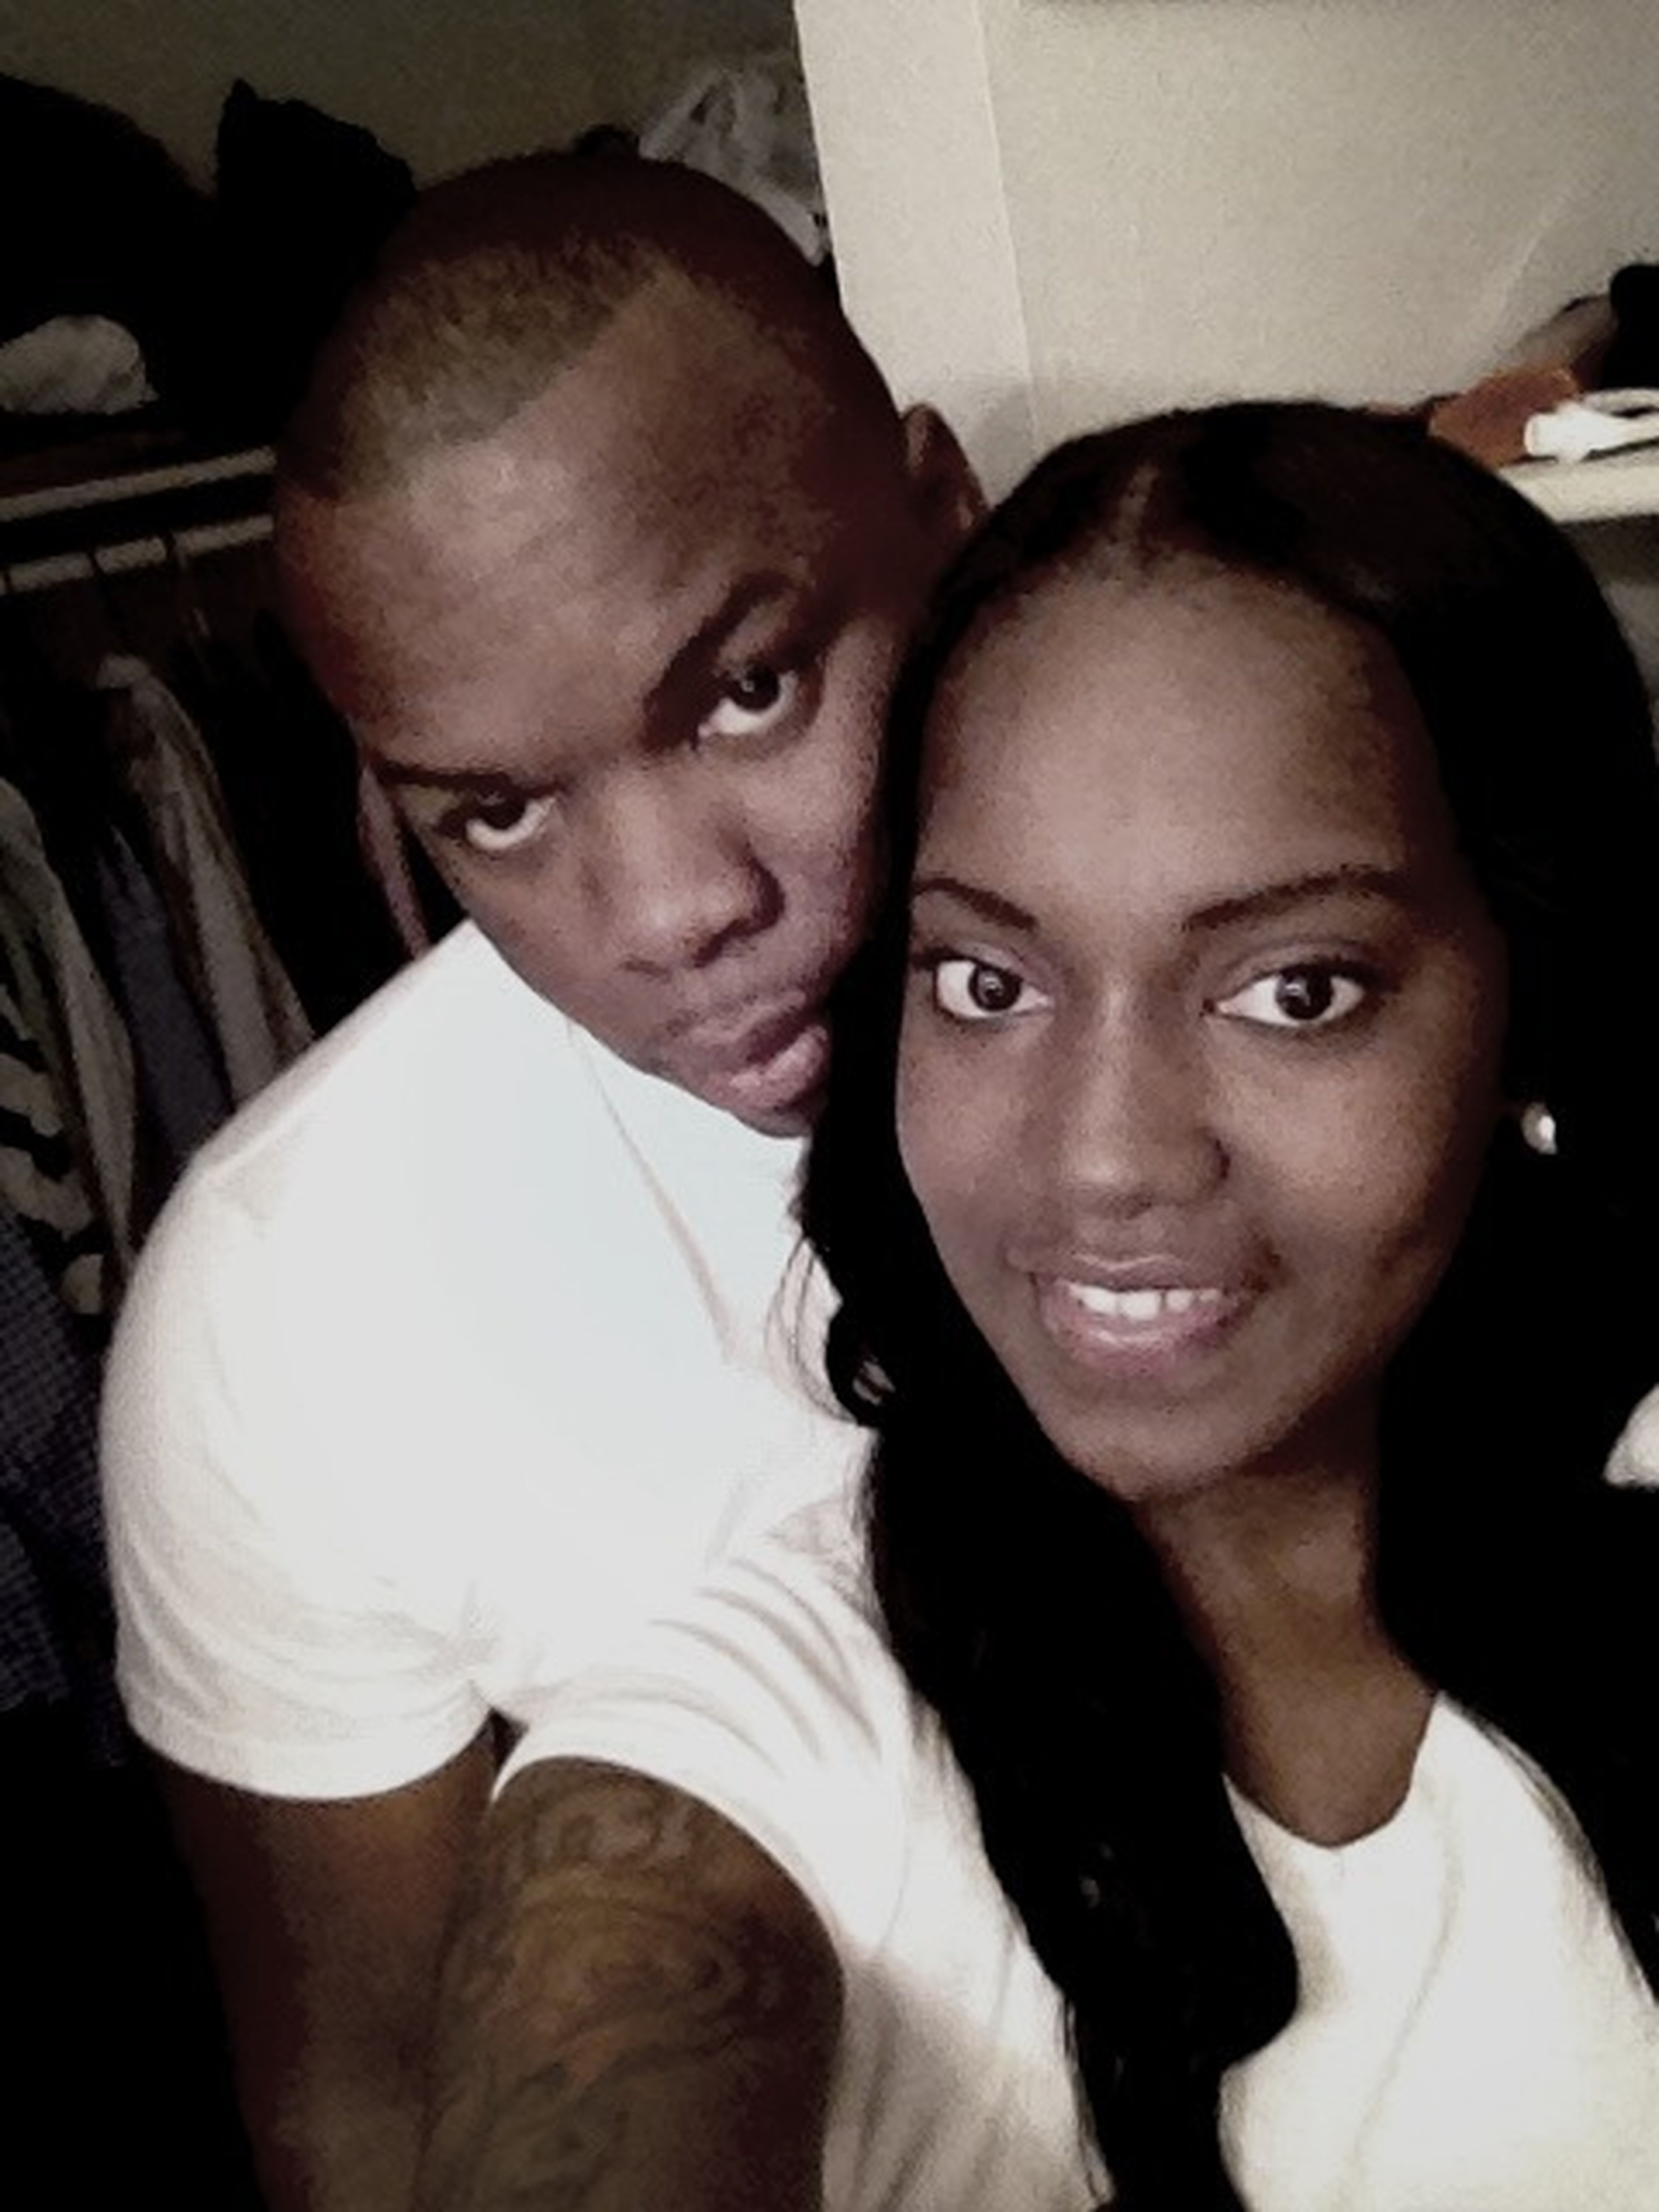 Taking Pics With The Hubby!!